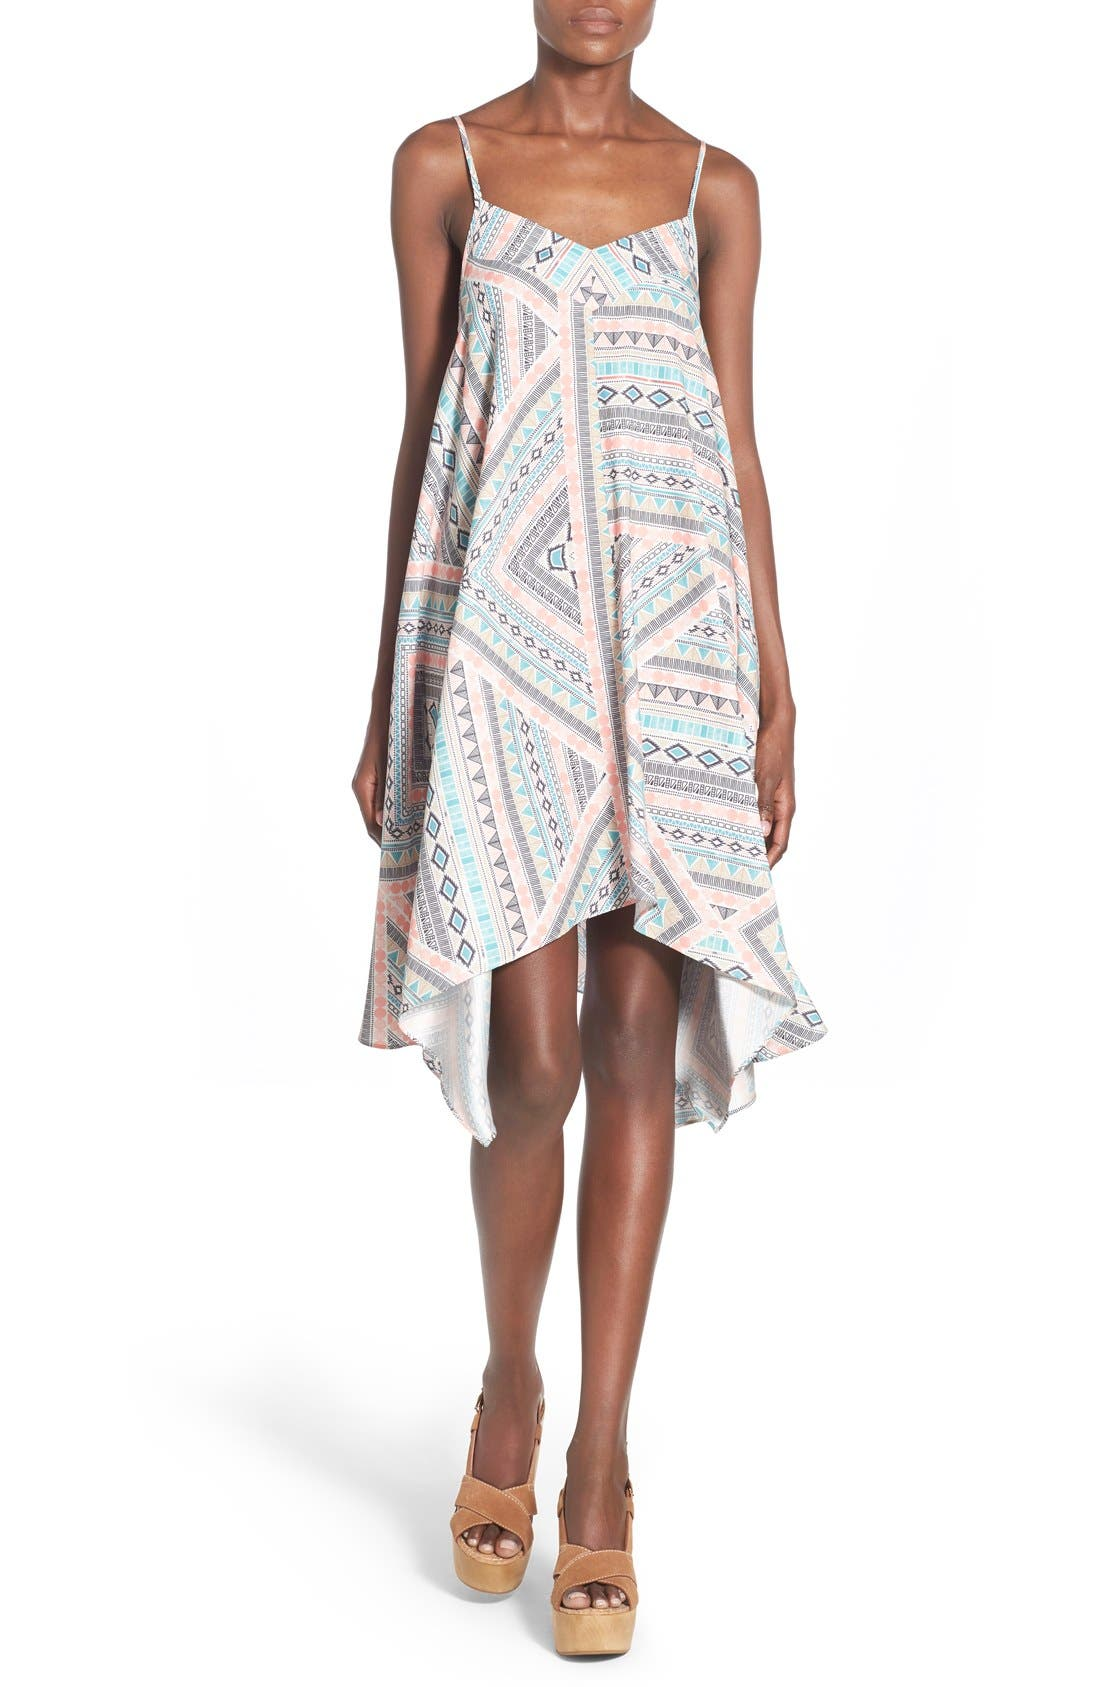 Alternate Image 1 Selected - devlin 'Tracy' Geo Print Handkerchief High/Low Dress